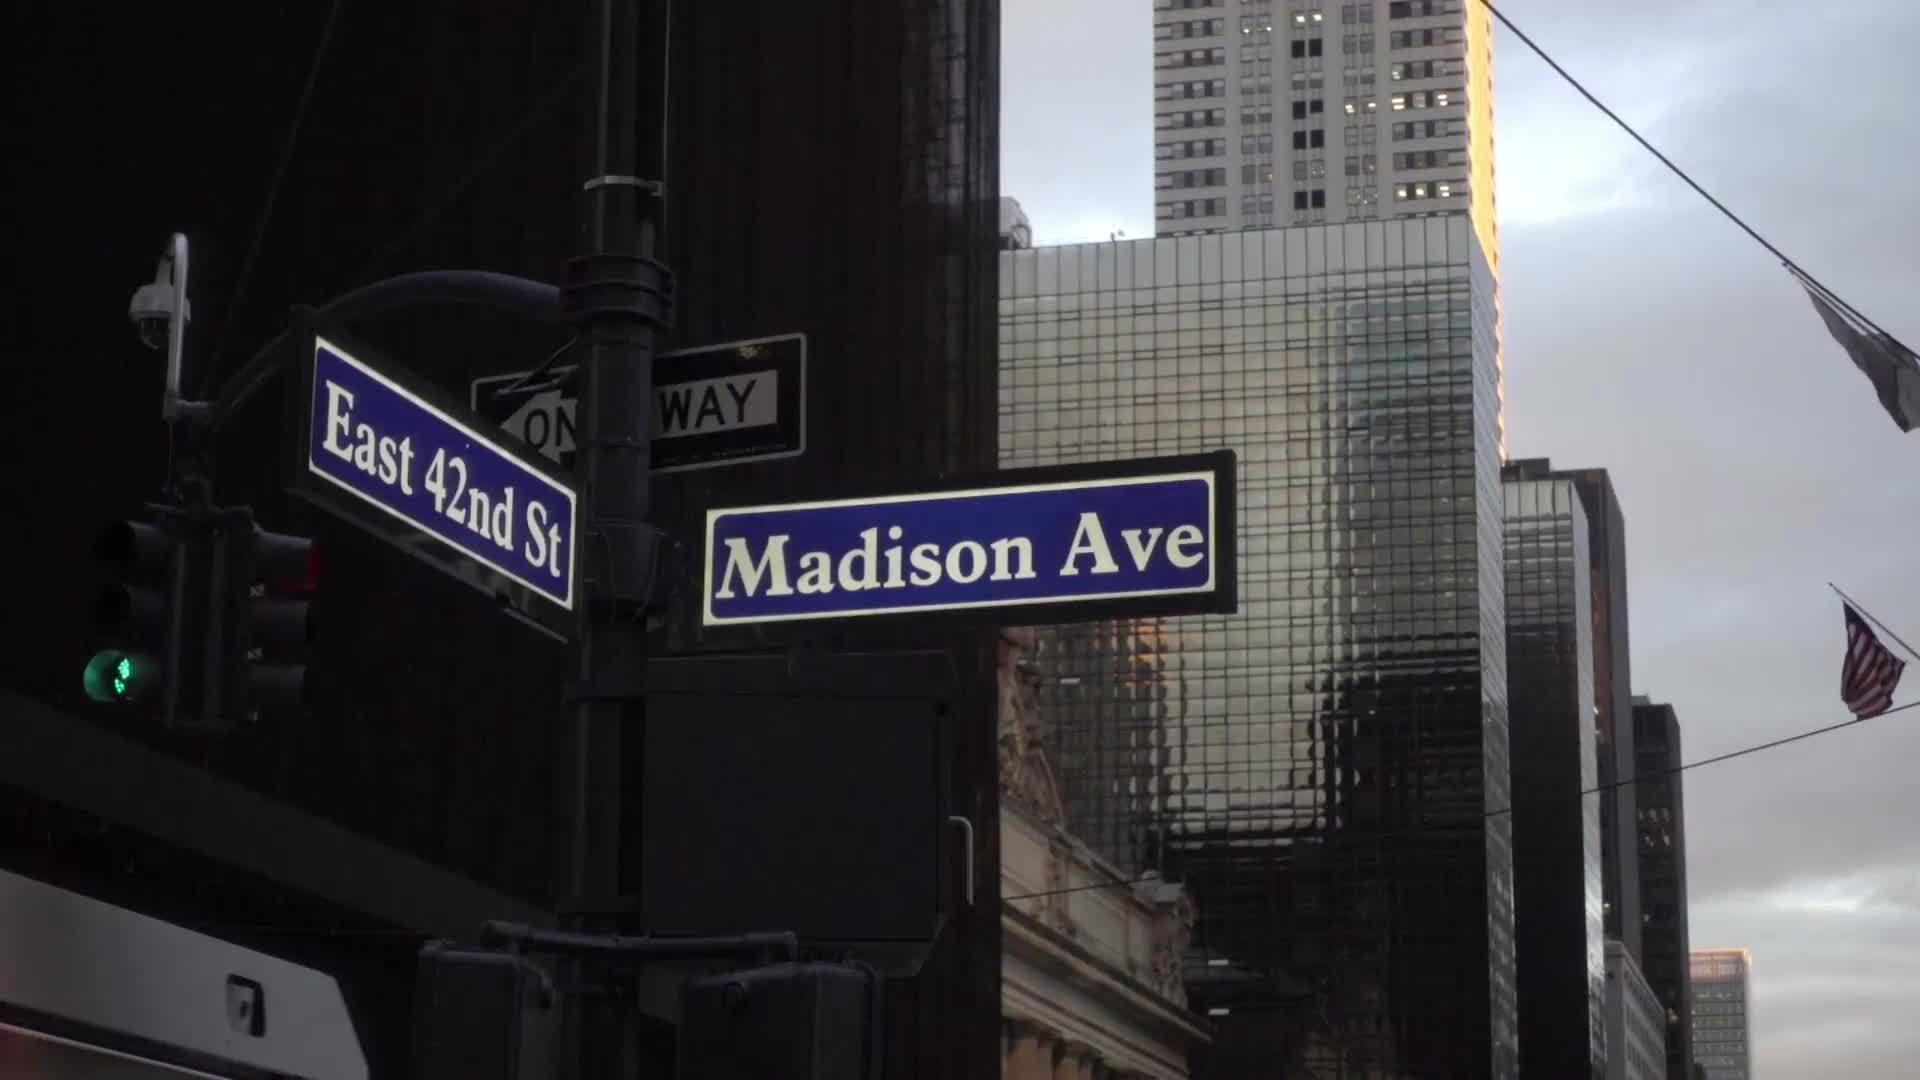 East 42nd Street and Madison Ave sign on street corner intersection, zooming out to busy crowded street with Chrysler Building in wide shot, Manhattan NYC 1080p HD